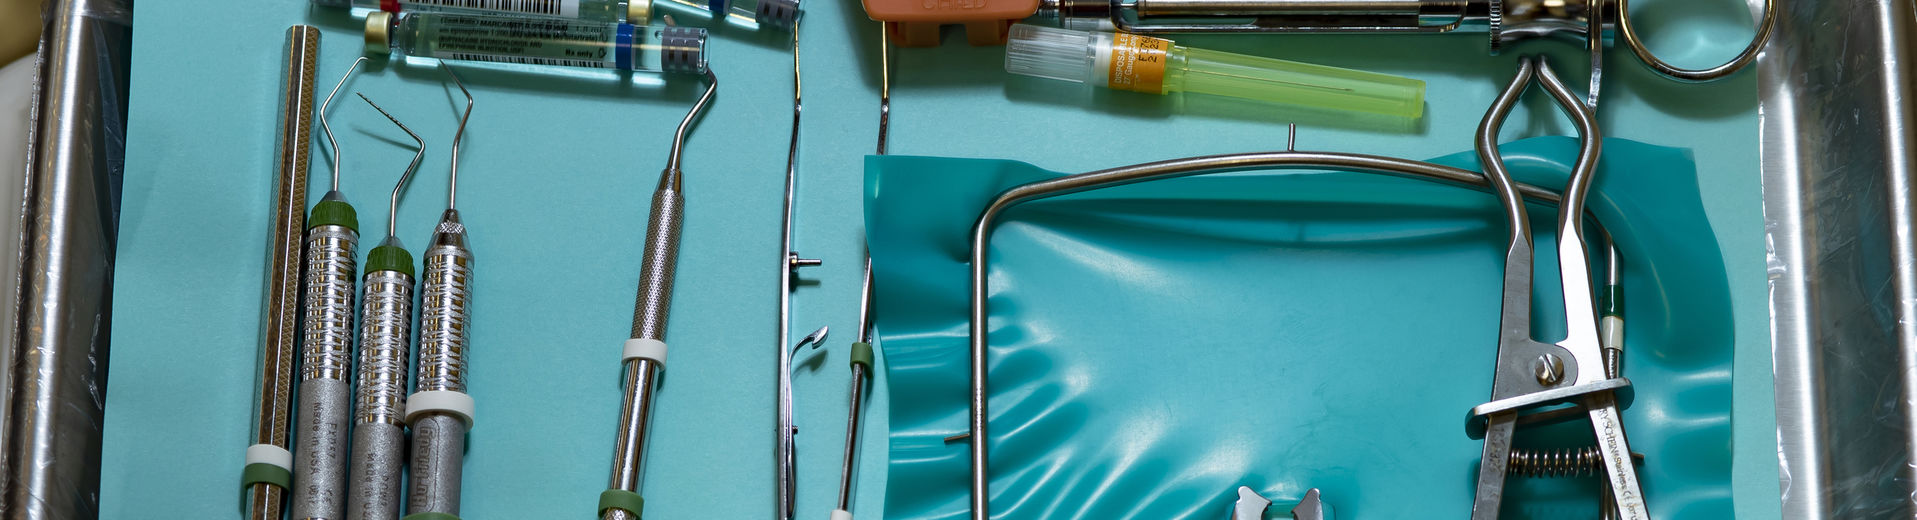 Dentistry tools arranged on a tray